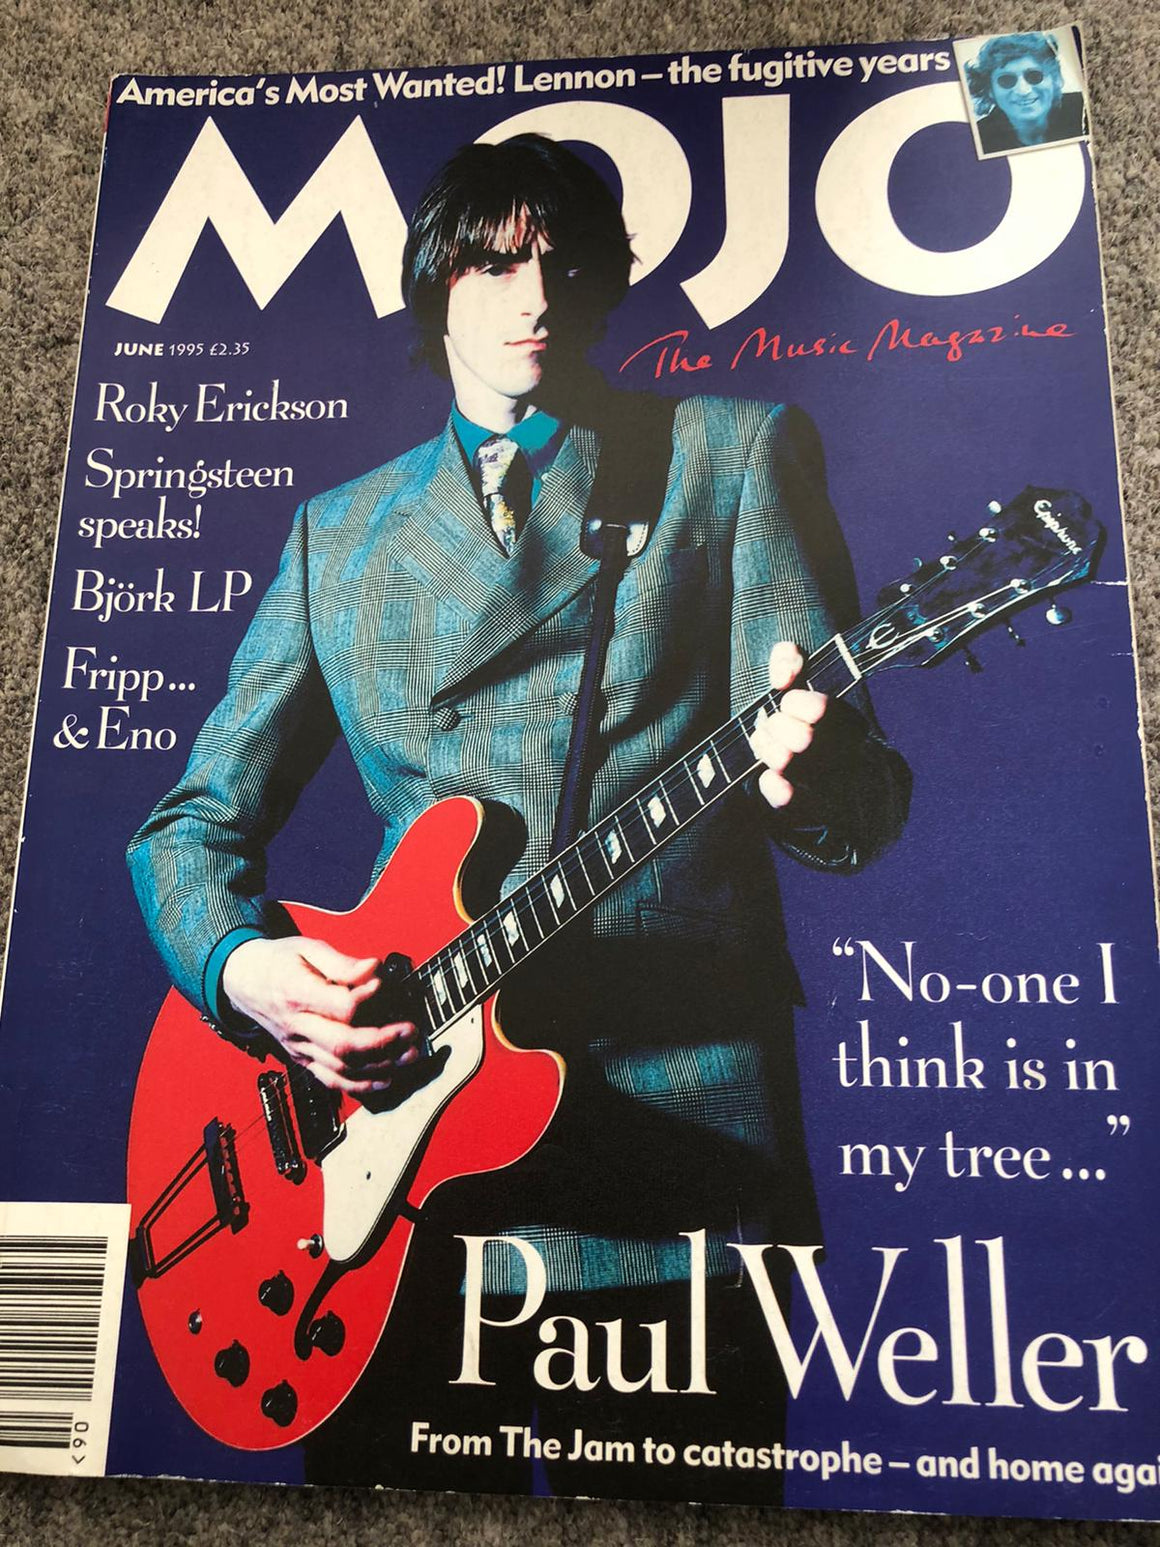 PAUL WELLER MOJO #19 MAGAZINE JUNE 1995 PAUL WELLER COVER AND FEATURE